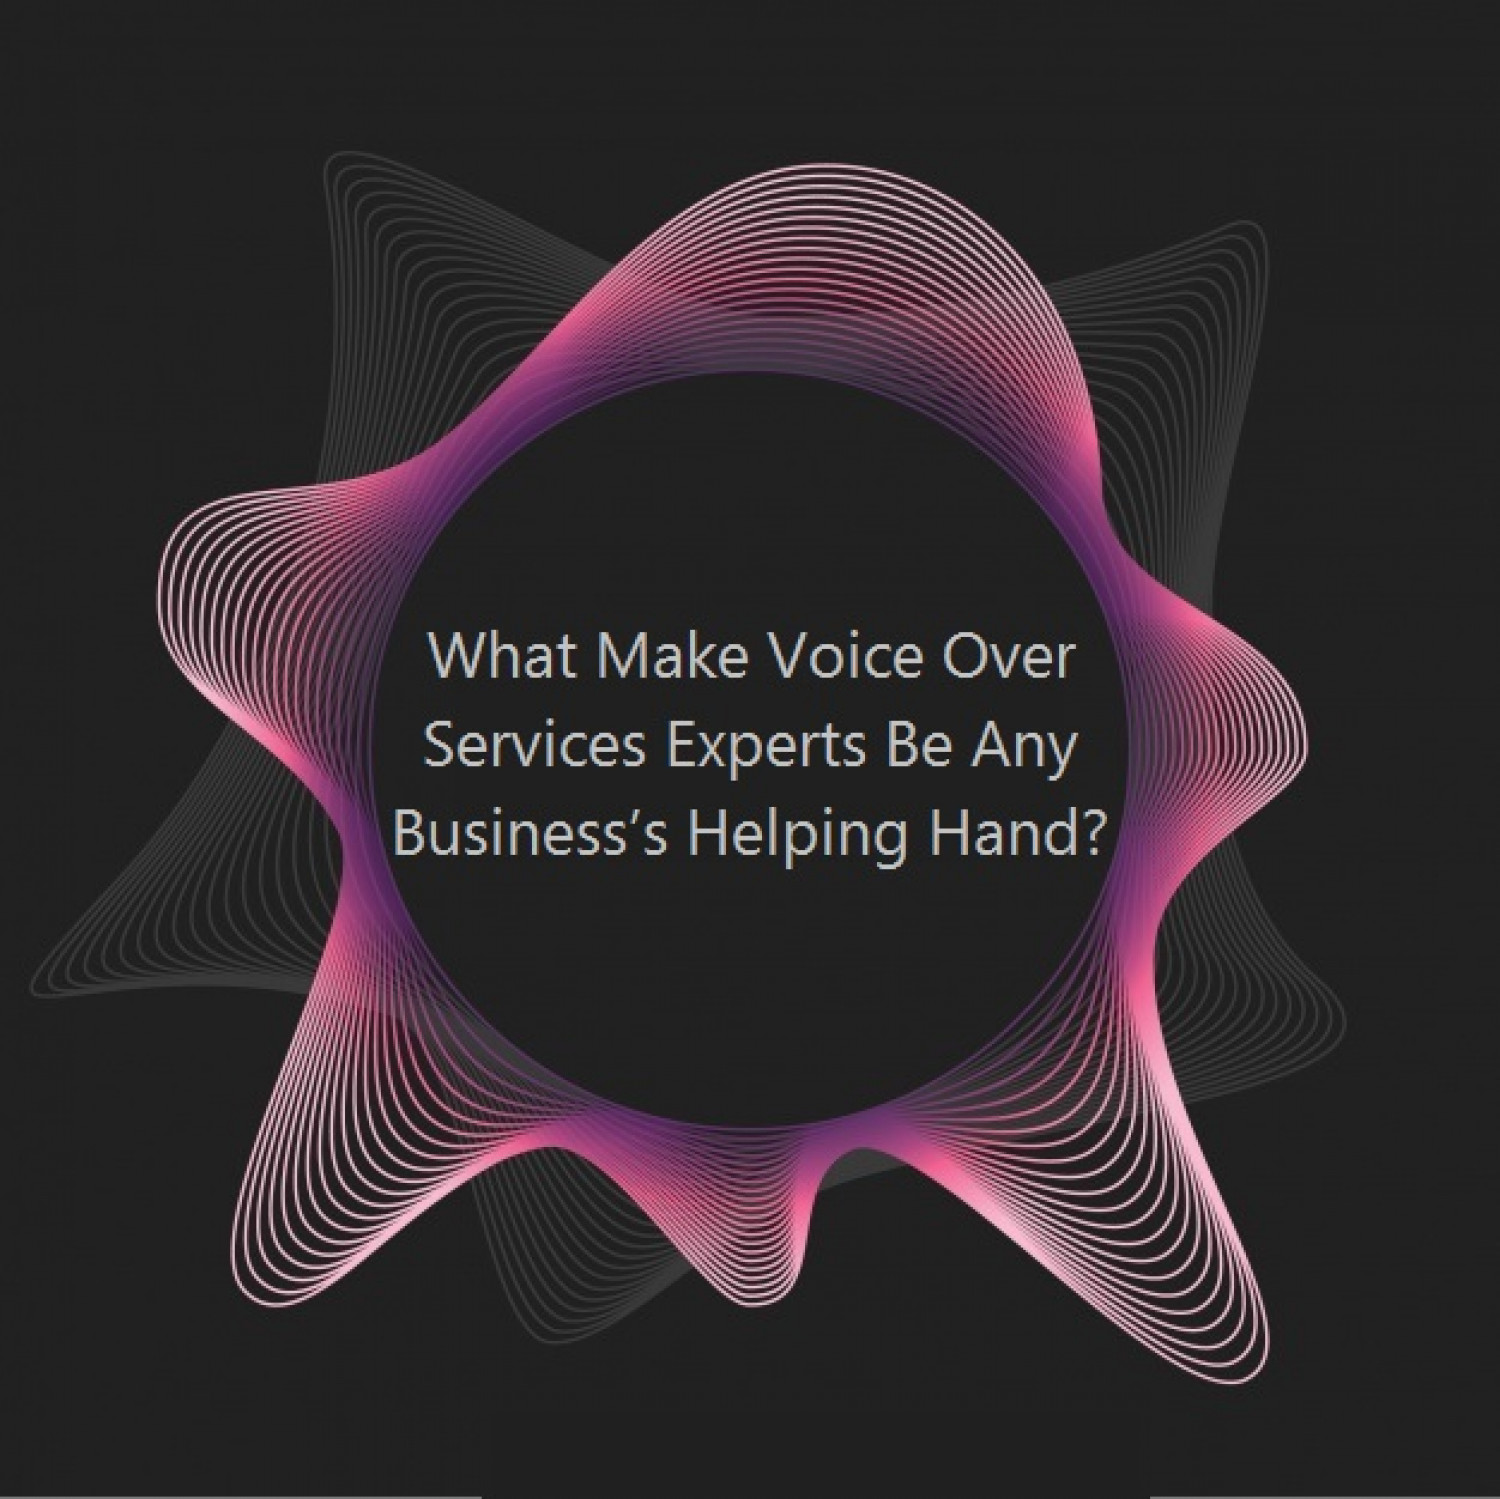 What Make Voice Over Services Experts Be Any Business's Helping Hand? Infographic